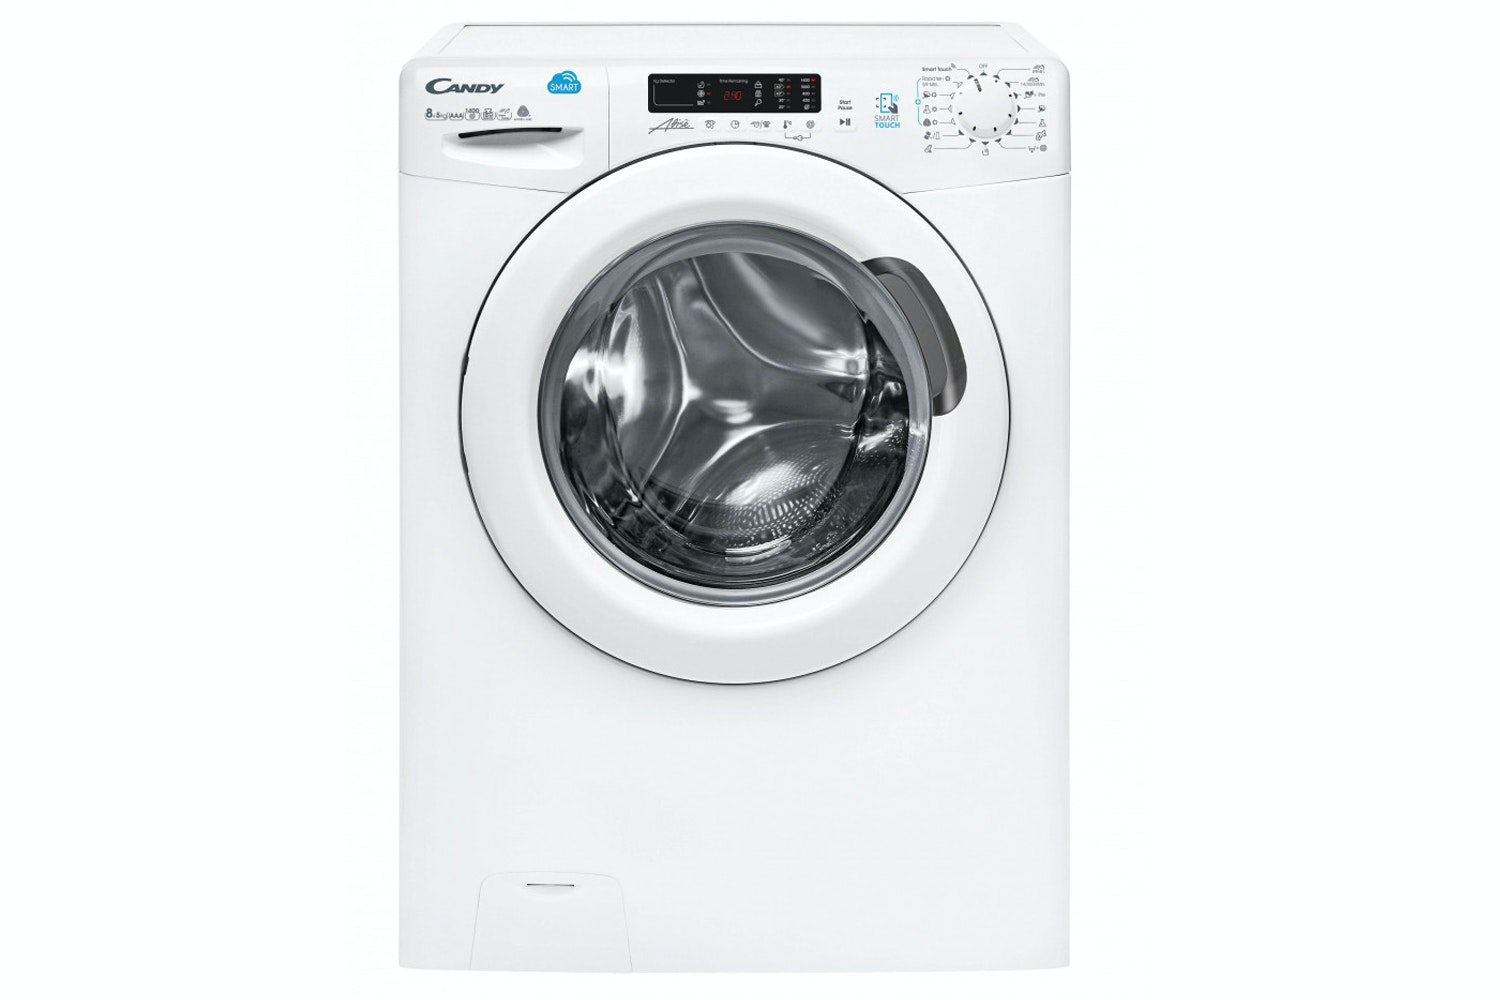 Candy 8kg/5kg Washer Dryer   CSW 485D-80